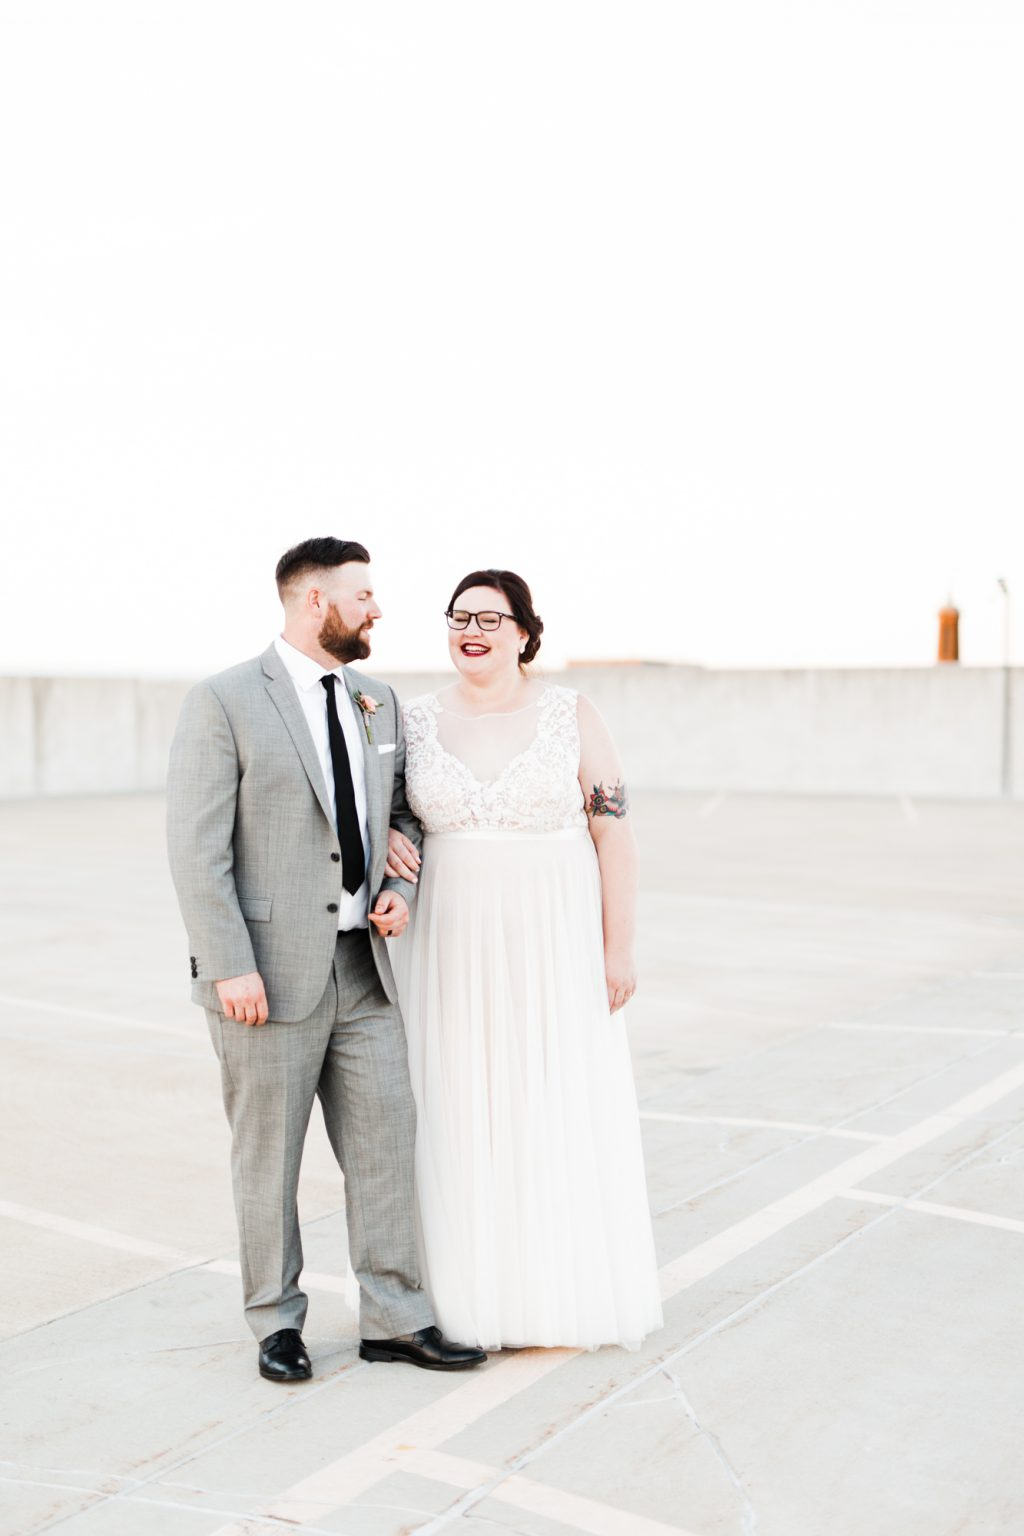 haley-richter-photo-west-chester-summer-wedding-boxcar-brewery-184